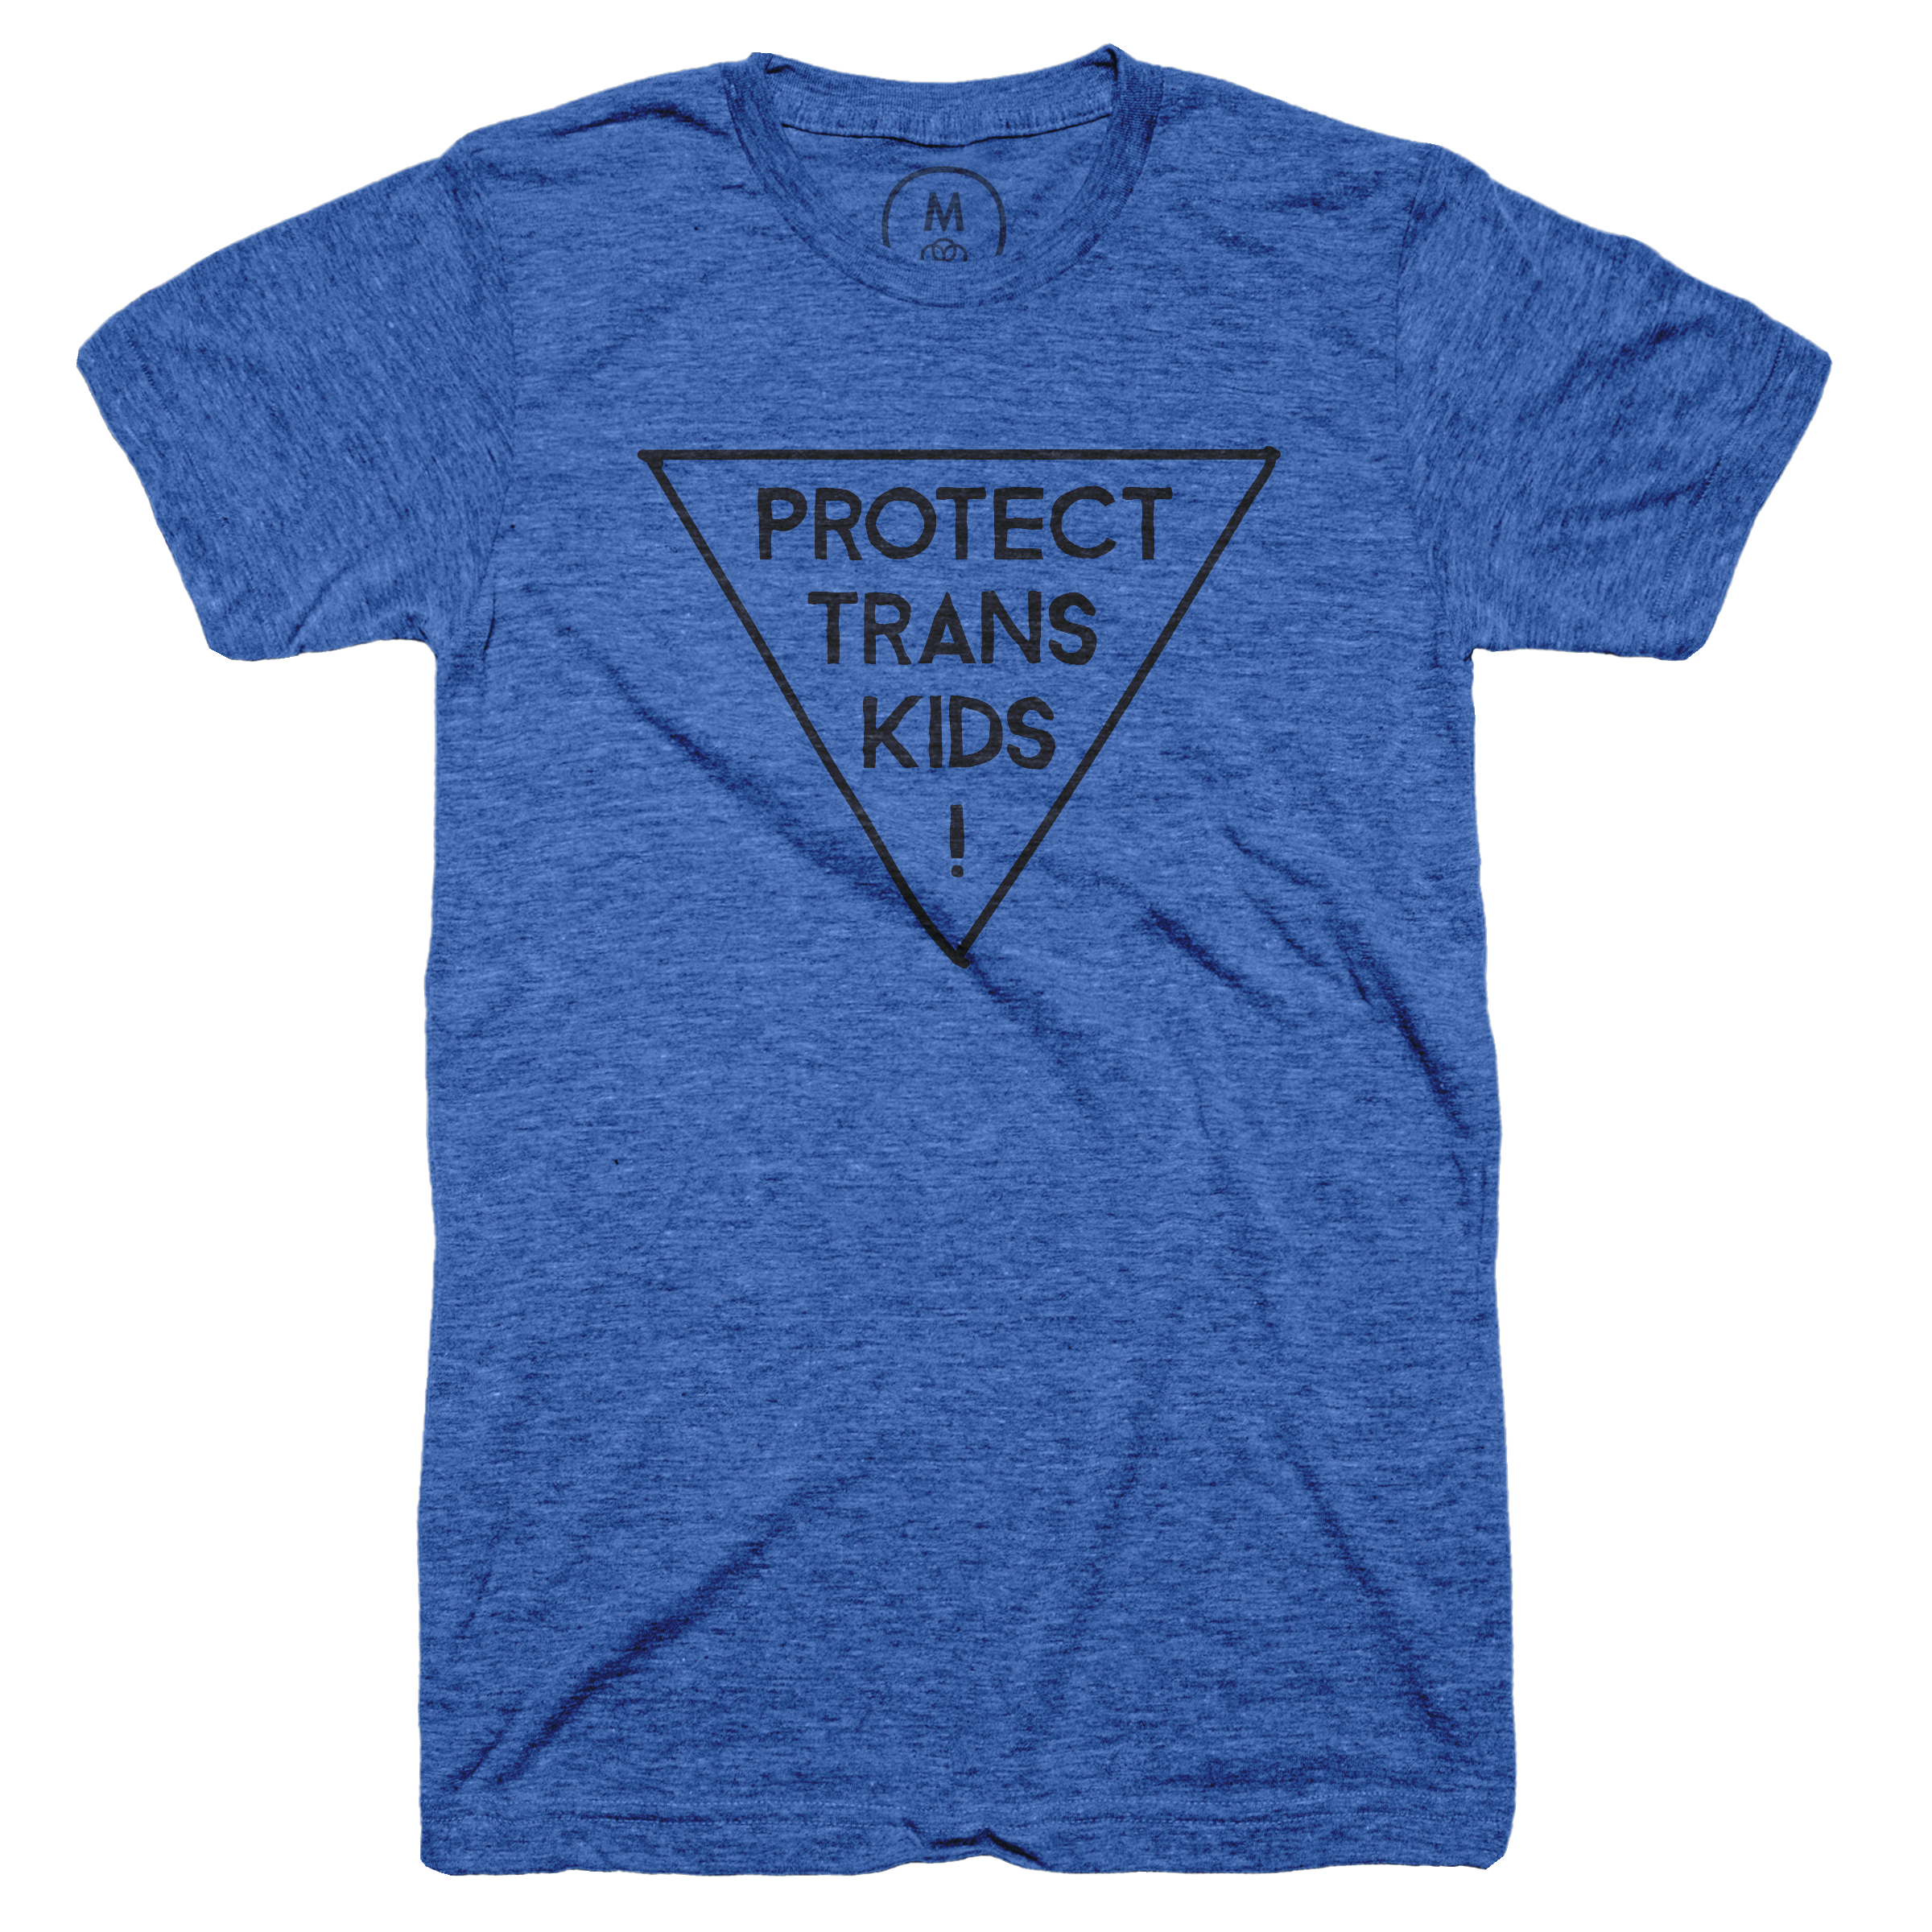 Protect Trans Kids!